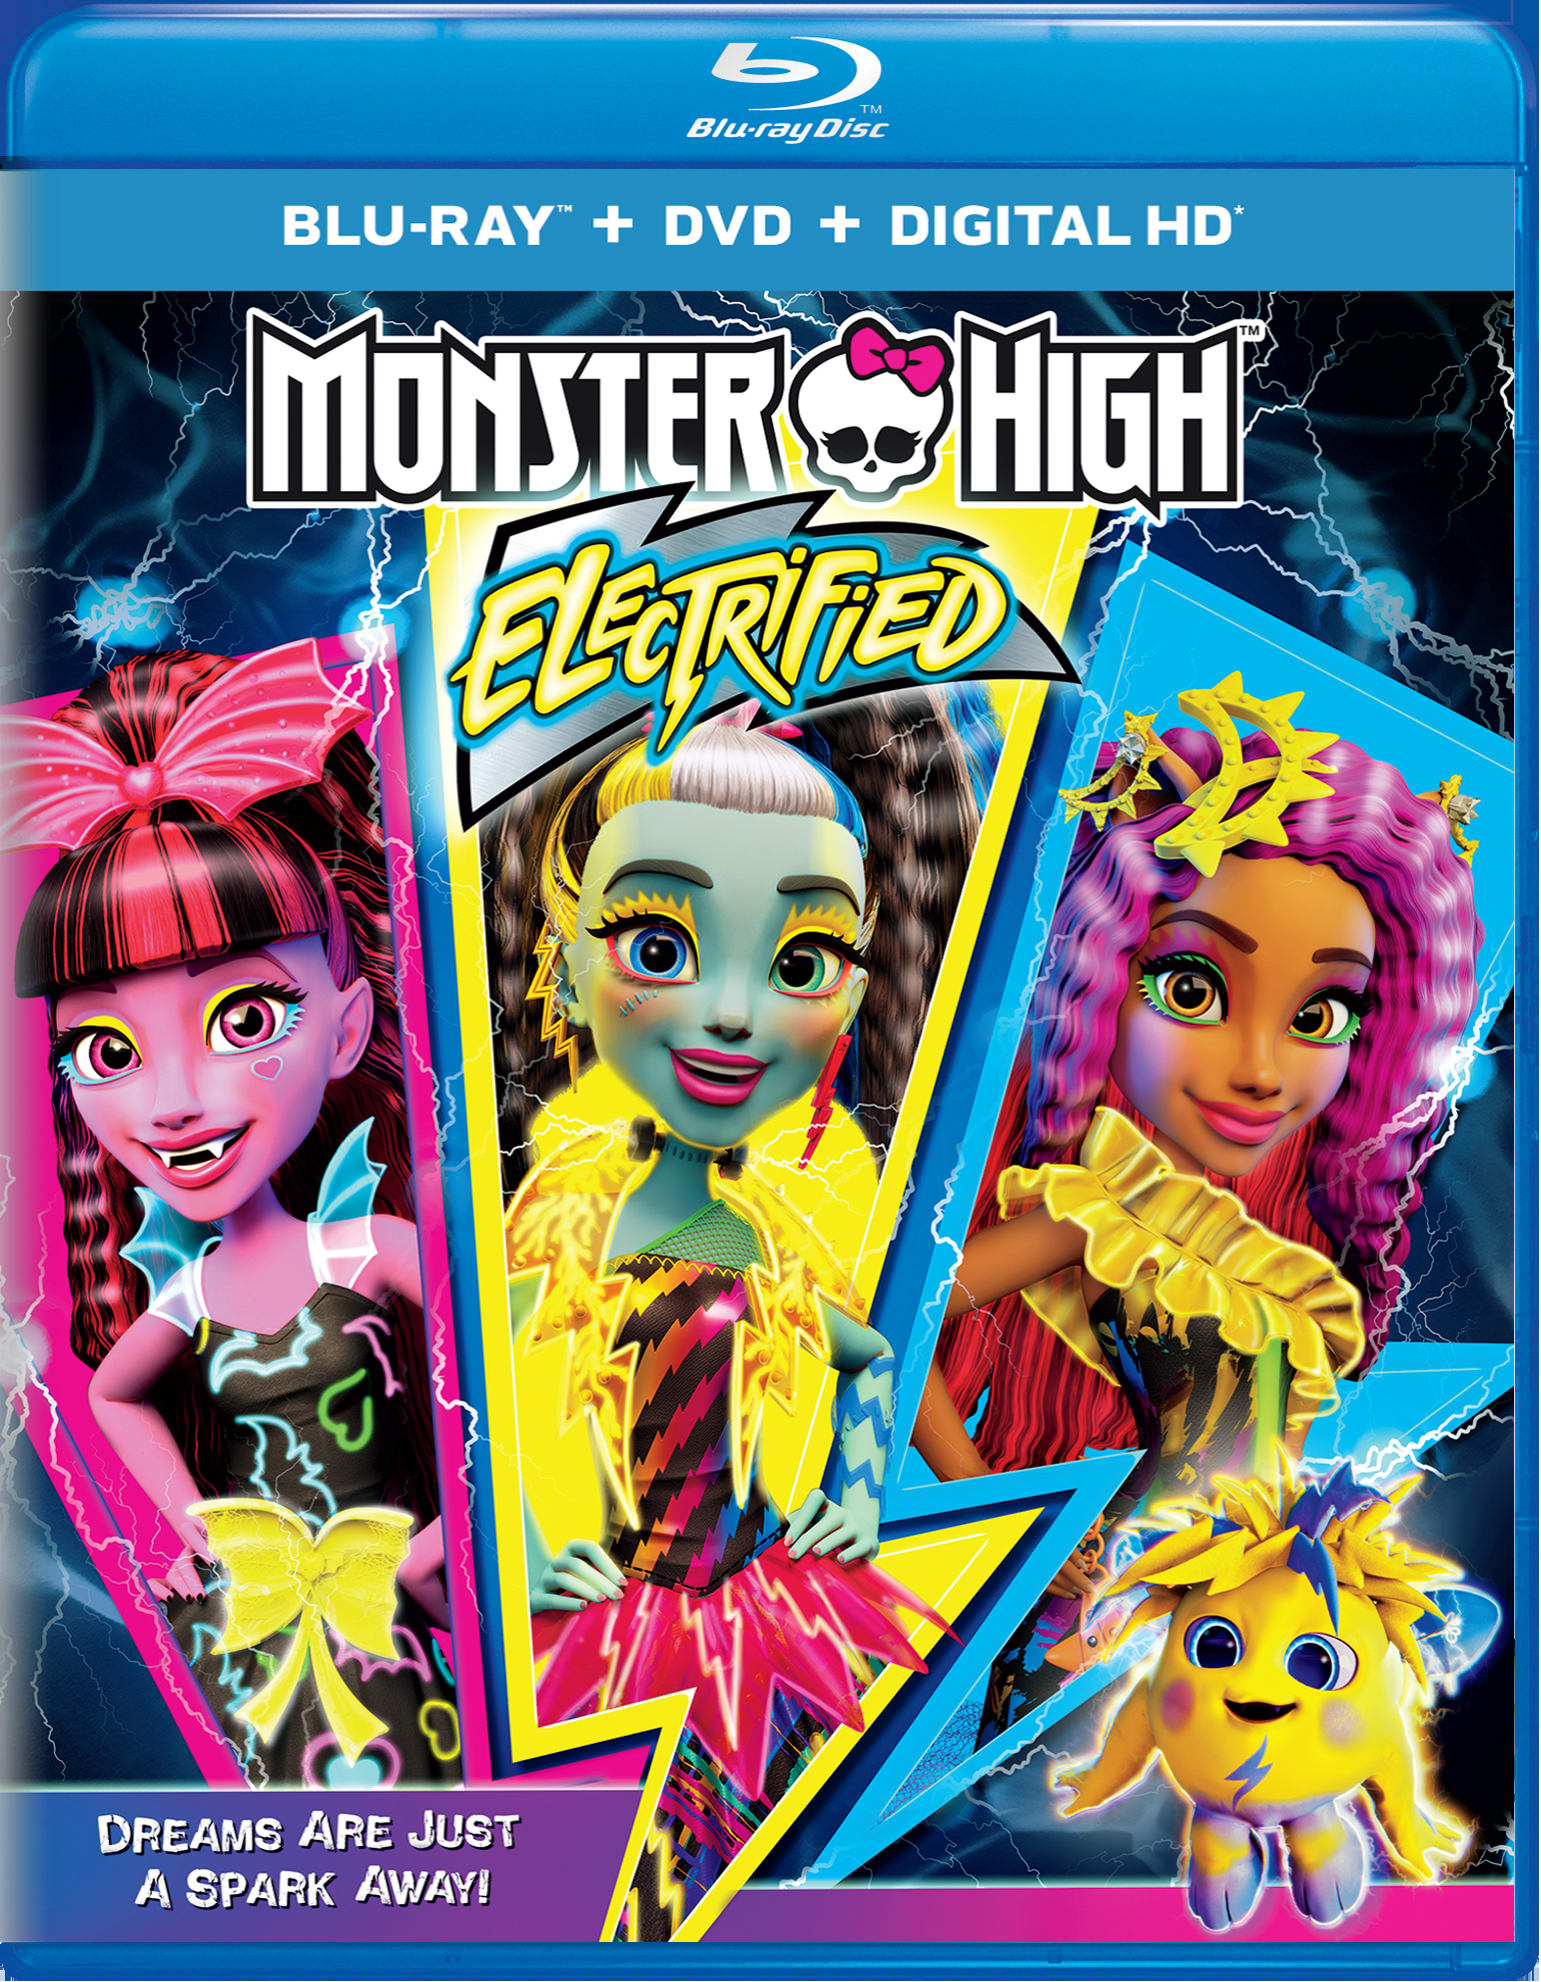 Monster High: Electrified (DVD + Digital) [Blu-ray]